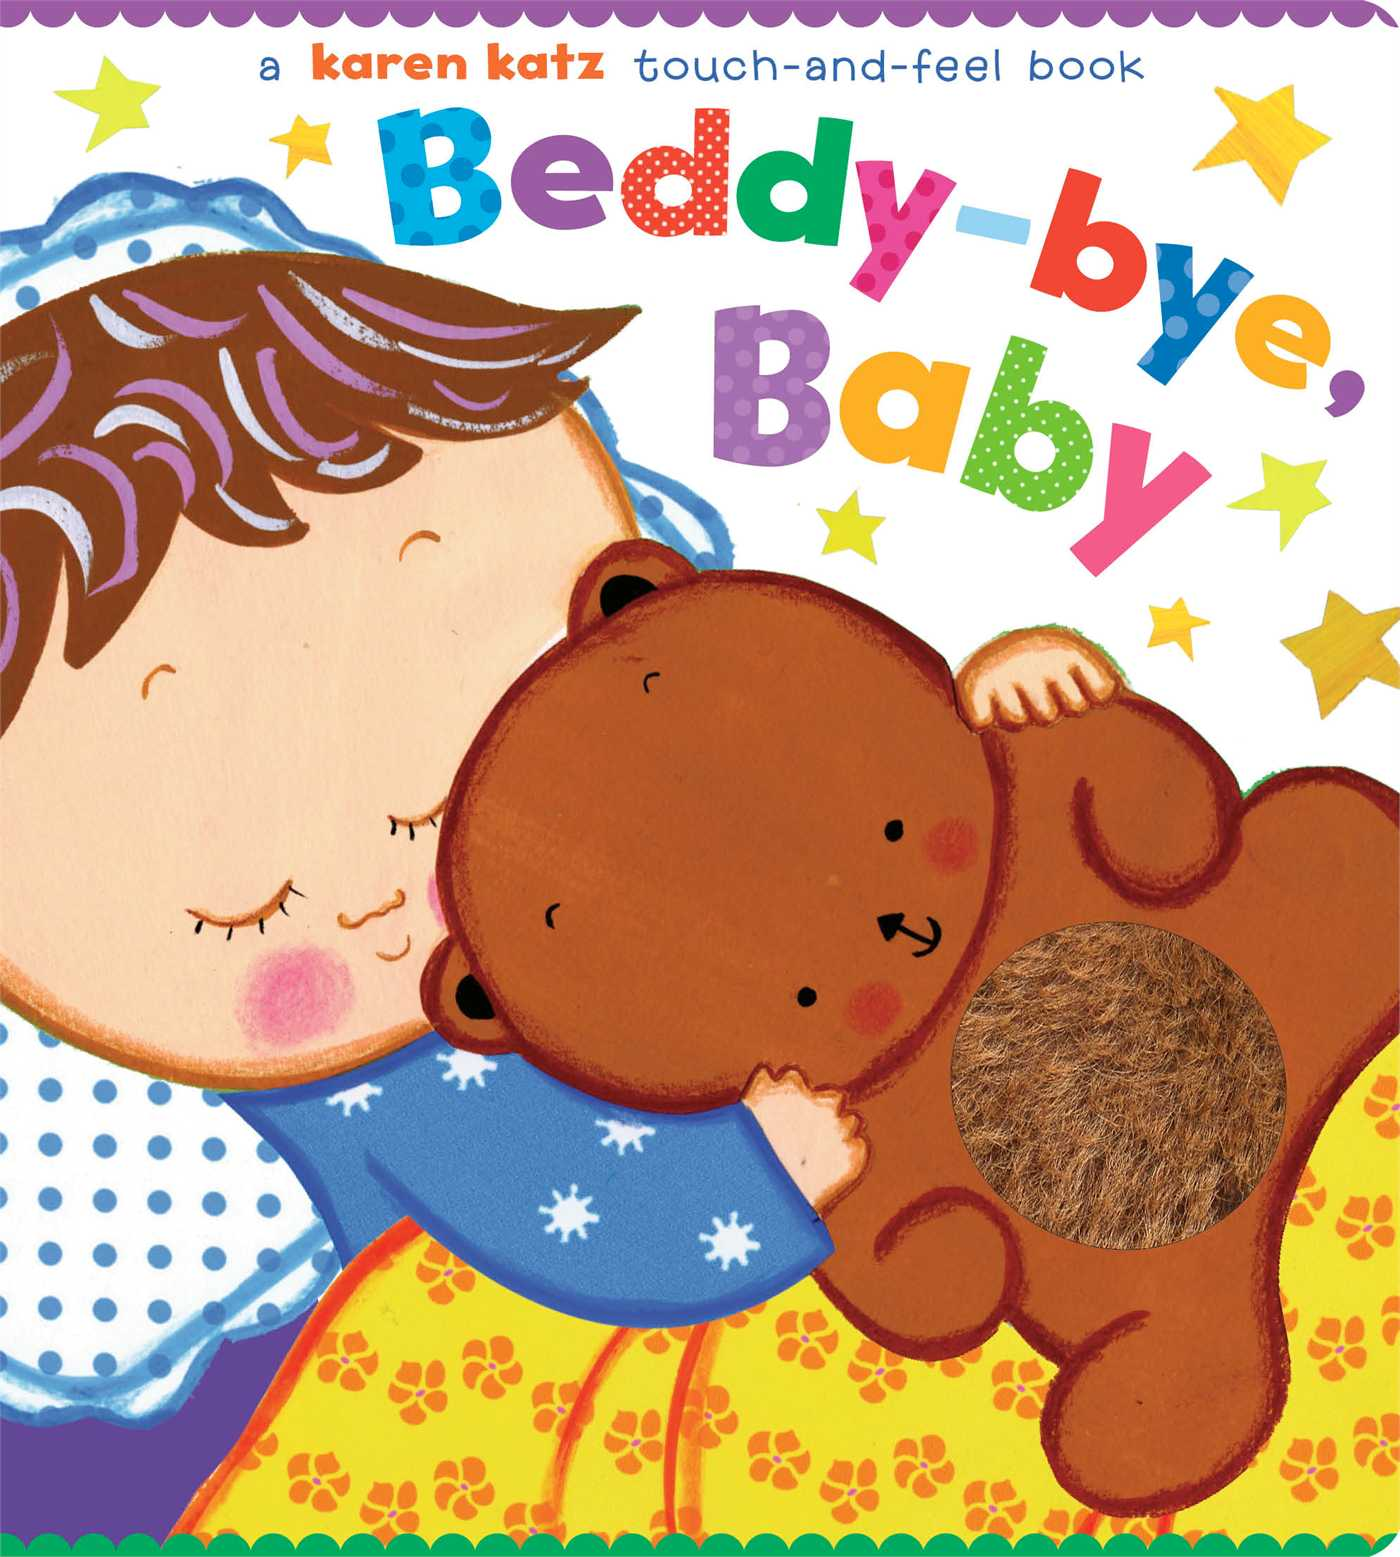 Beddy bye Baby A Touch and feel Book (Board Book)